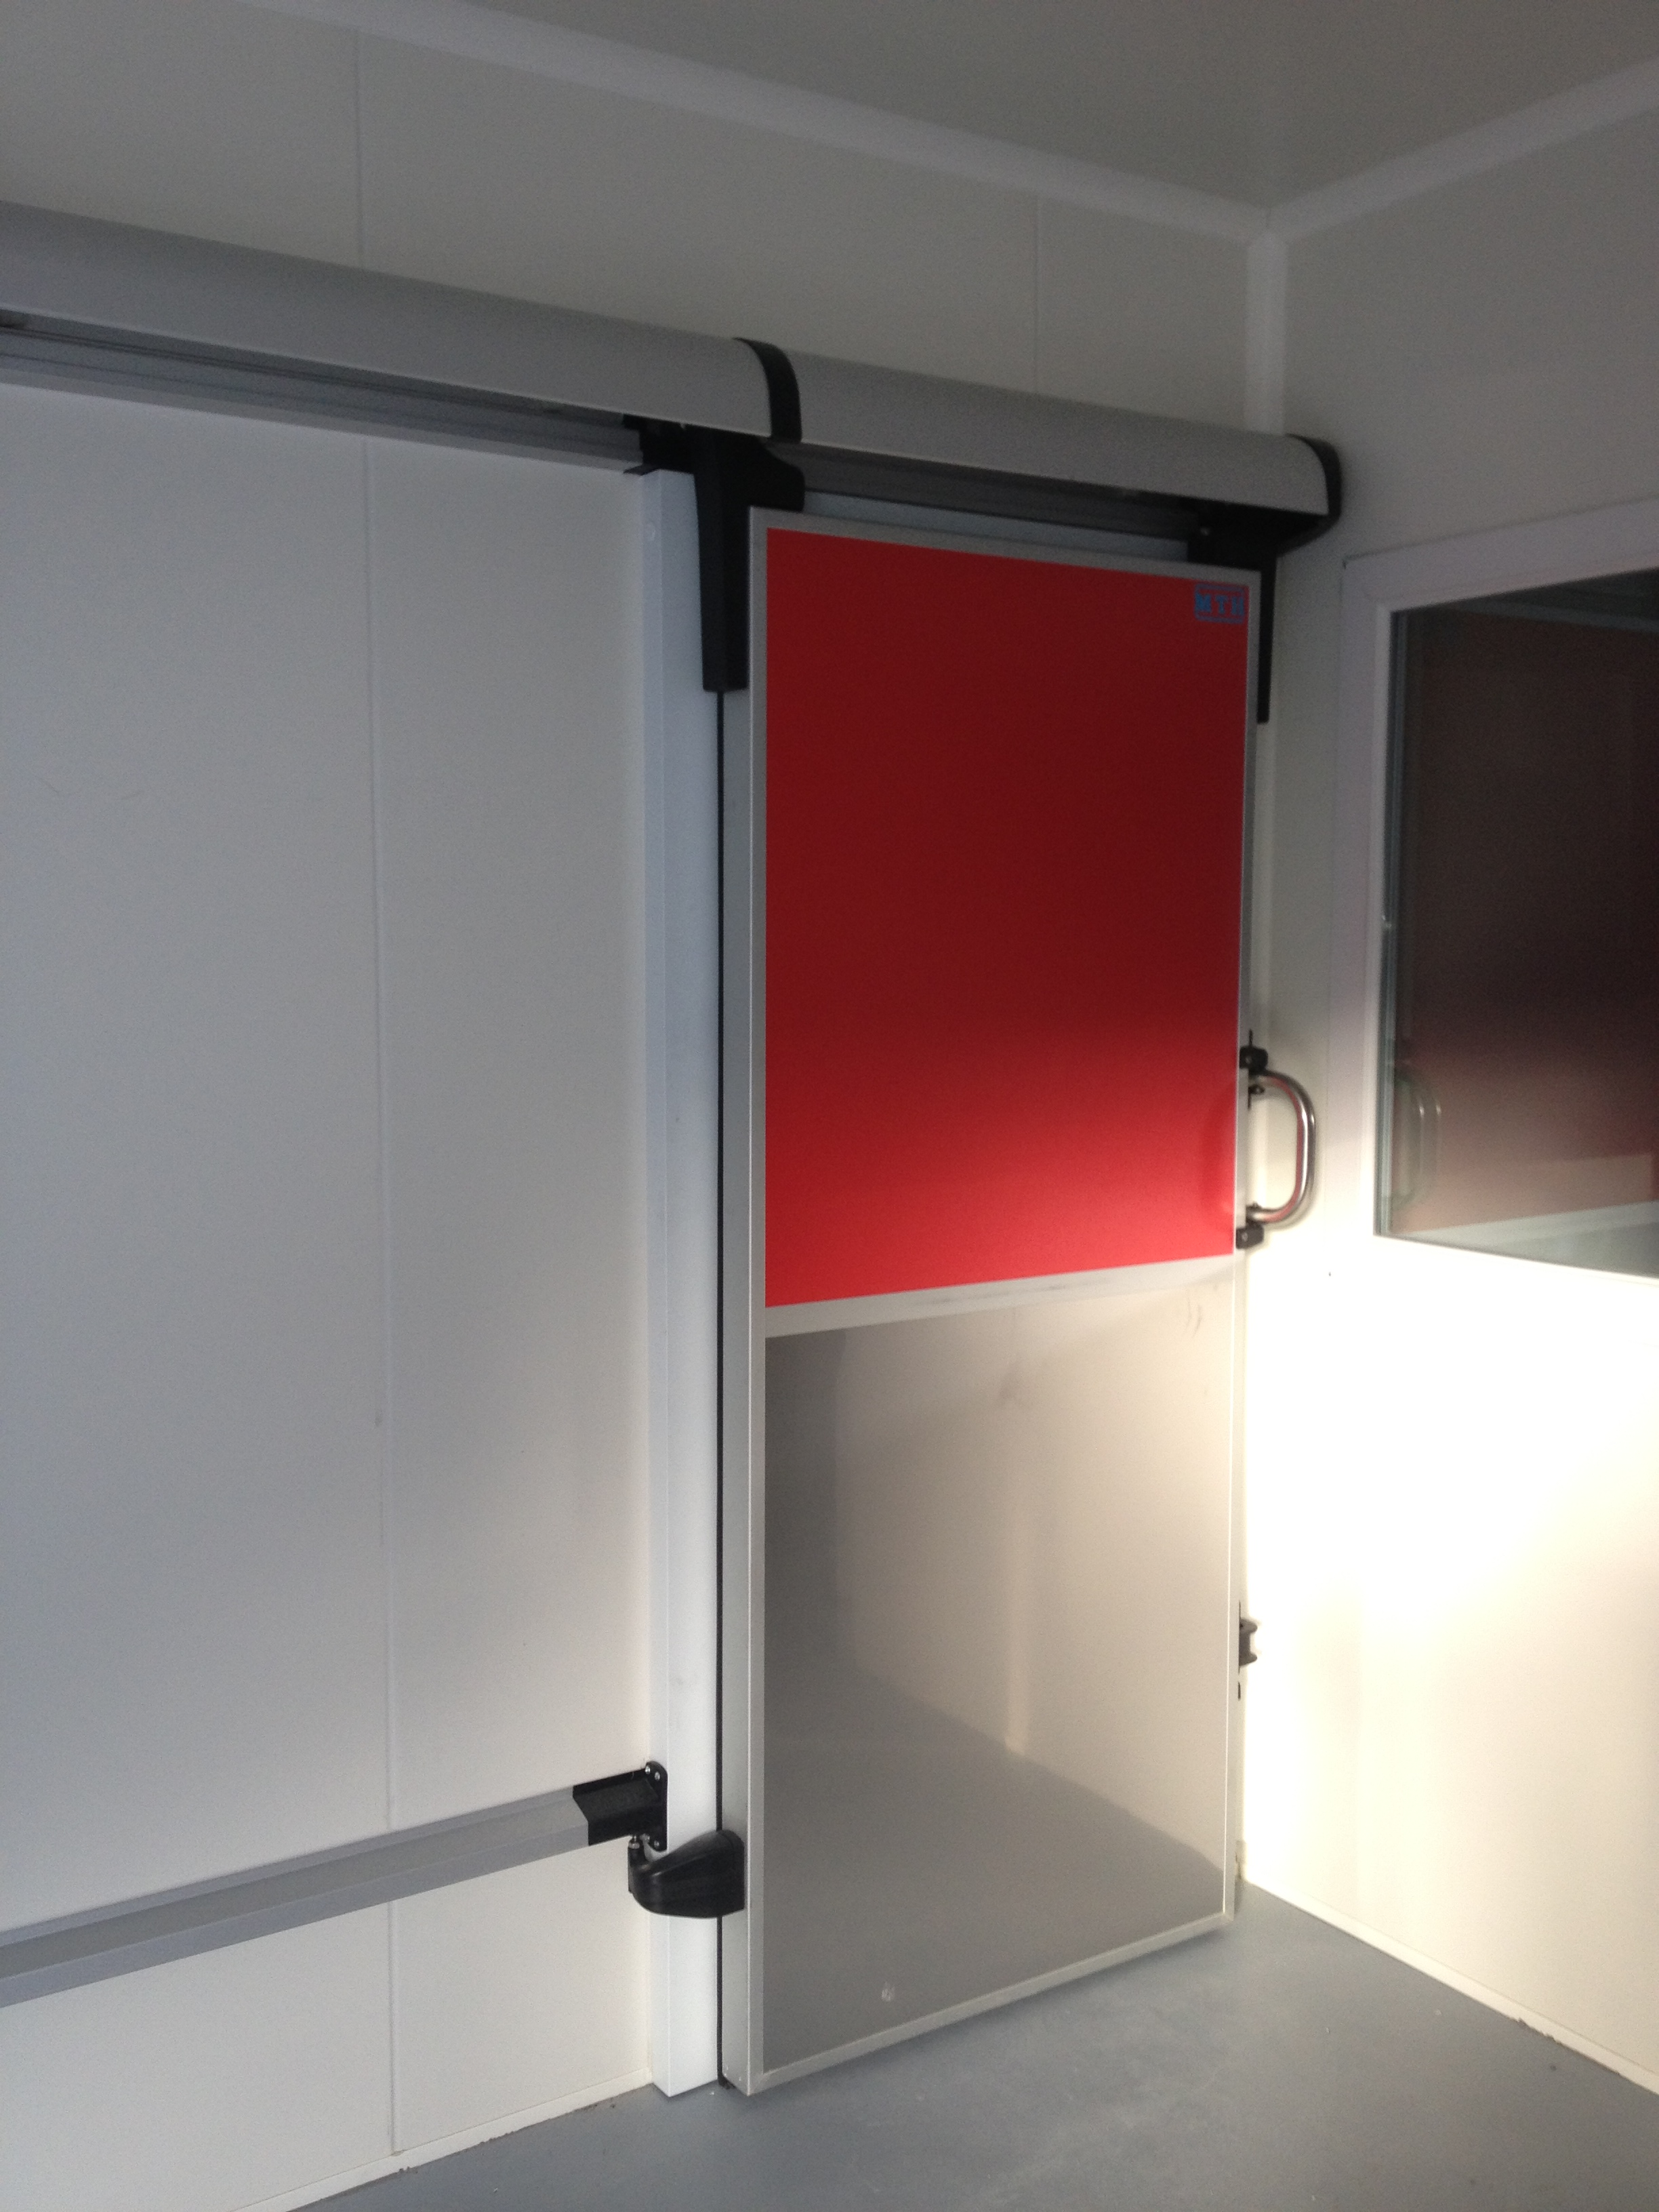 100 porte coulissante isotherme industisol industisol for Porte isotherme chambre froide